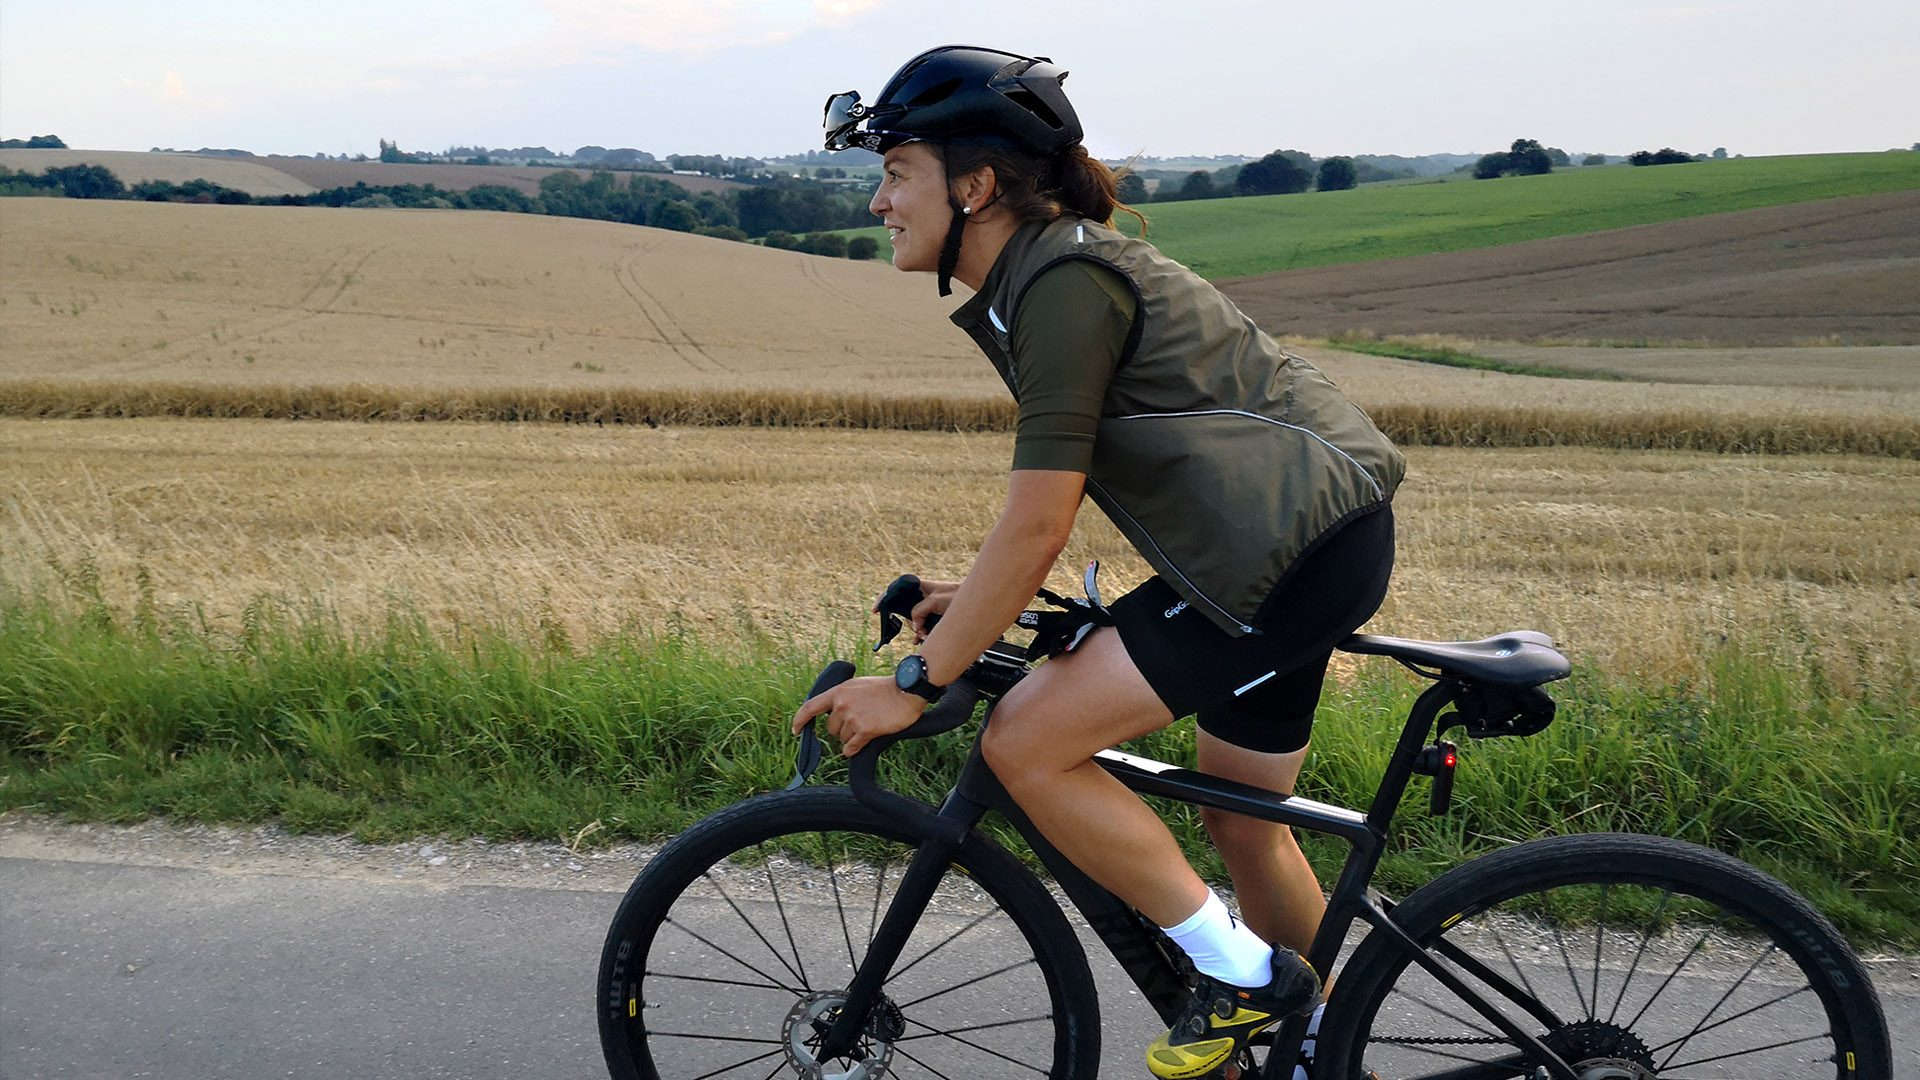 Jule with her bike on the road